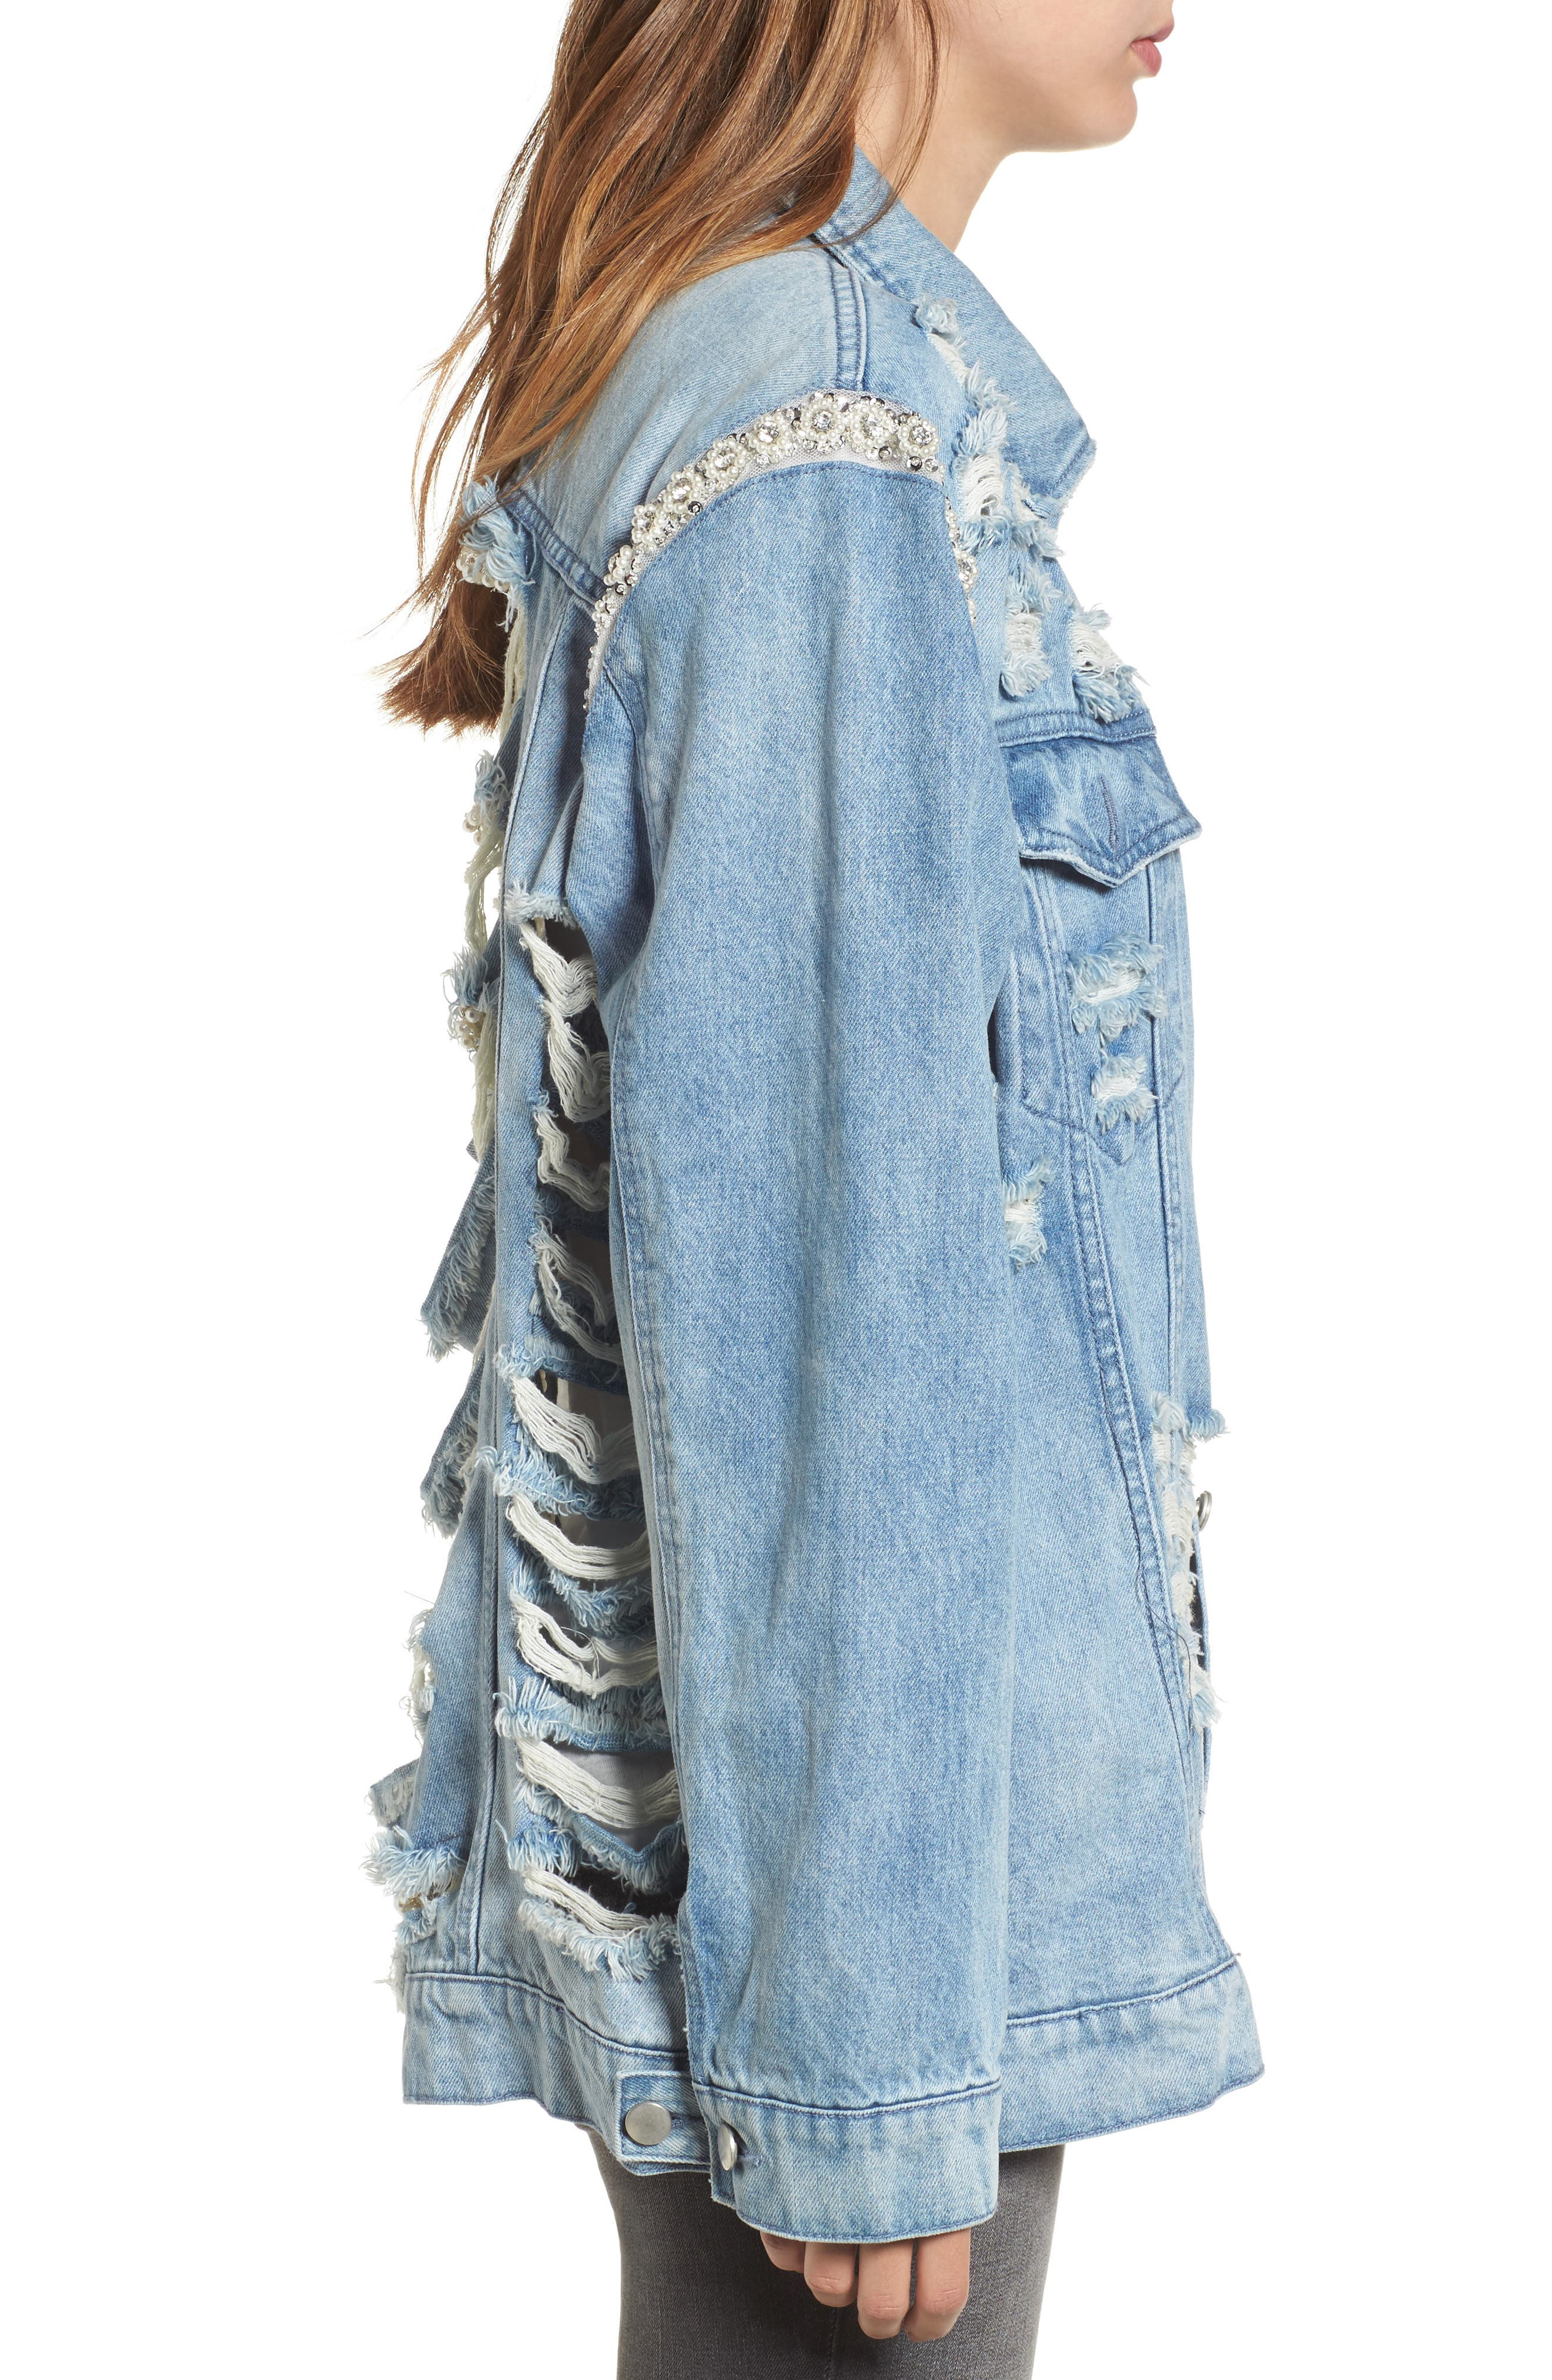 Embellished Ripped Denim Jacket,                             Alternate thumbnail 3, color,                             Blue W/ Pearls & Diamonds